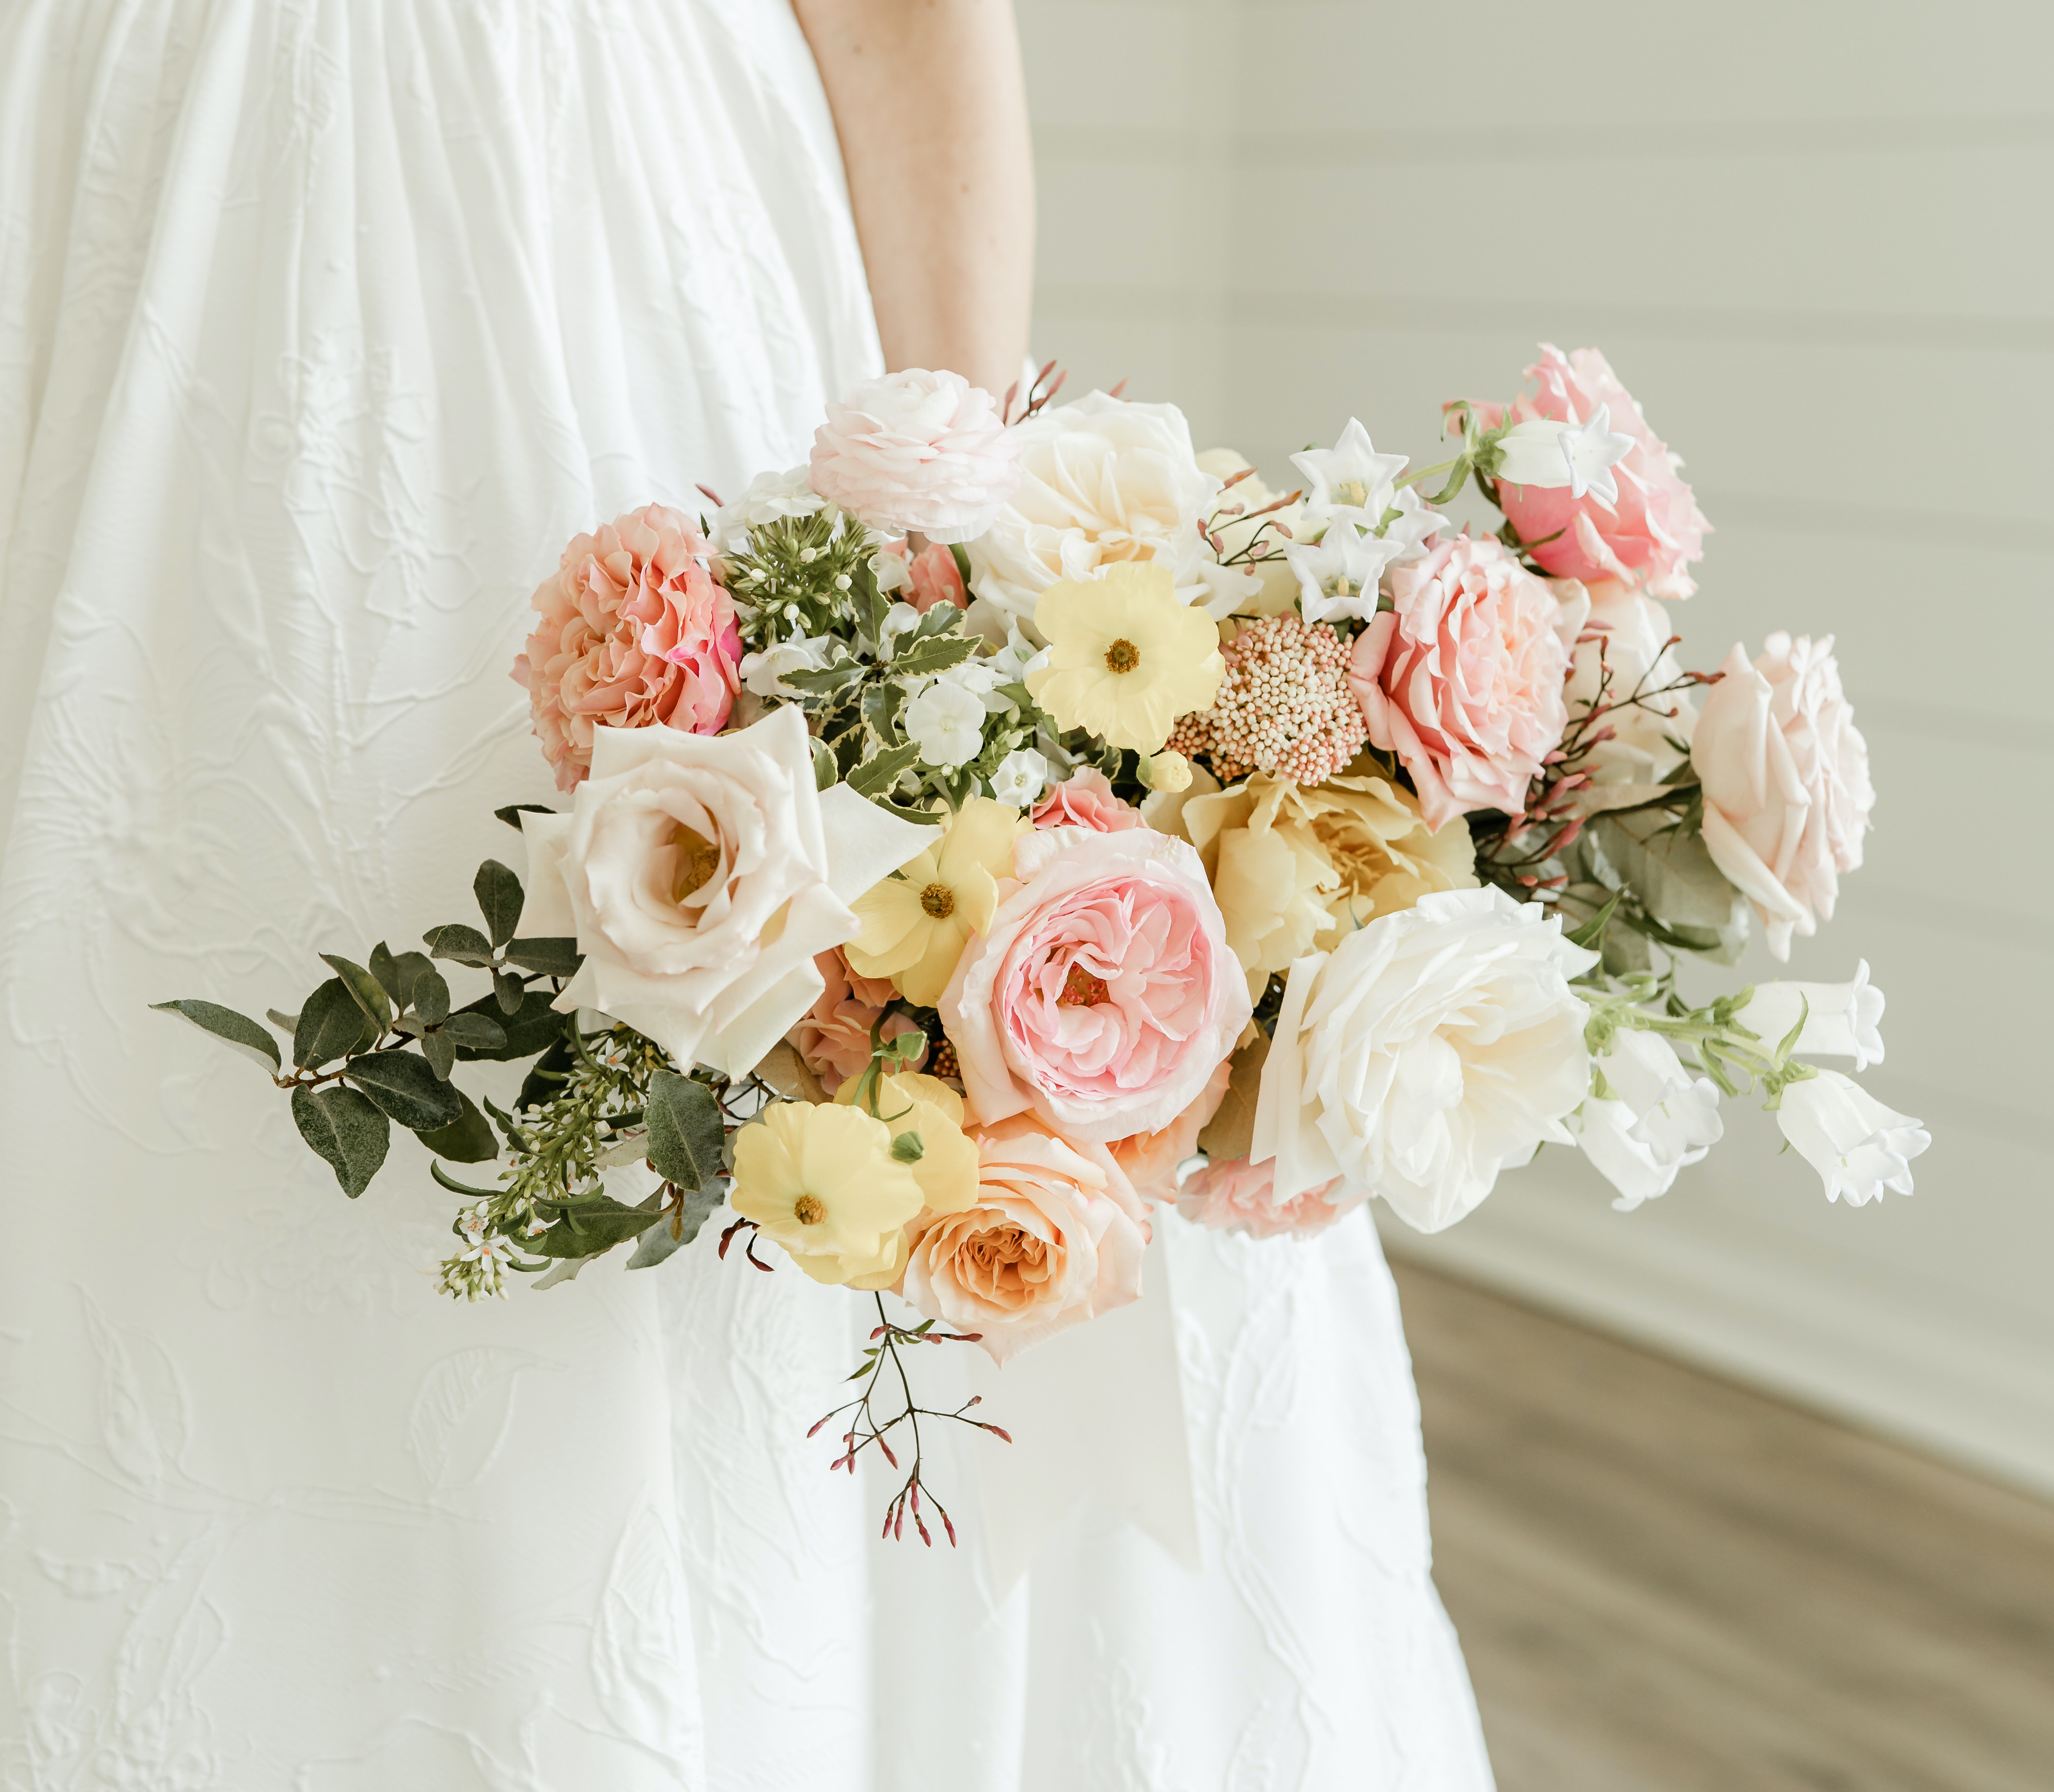 The bride's colorful bridal bouquet with pops of yellow and pink.